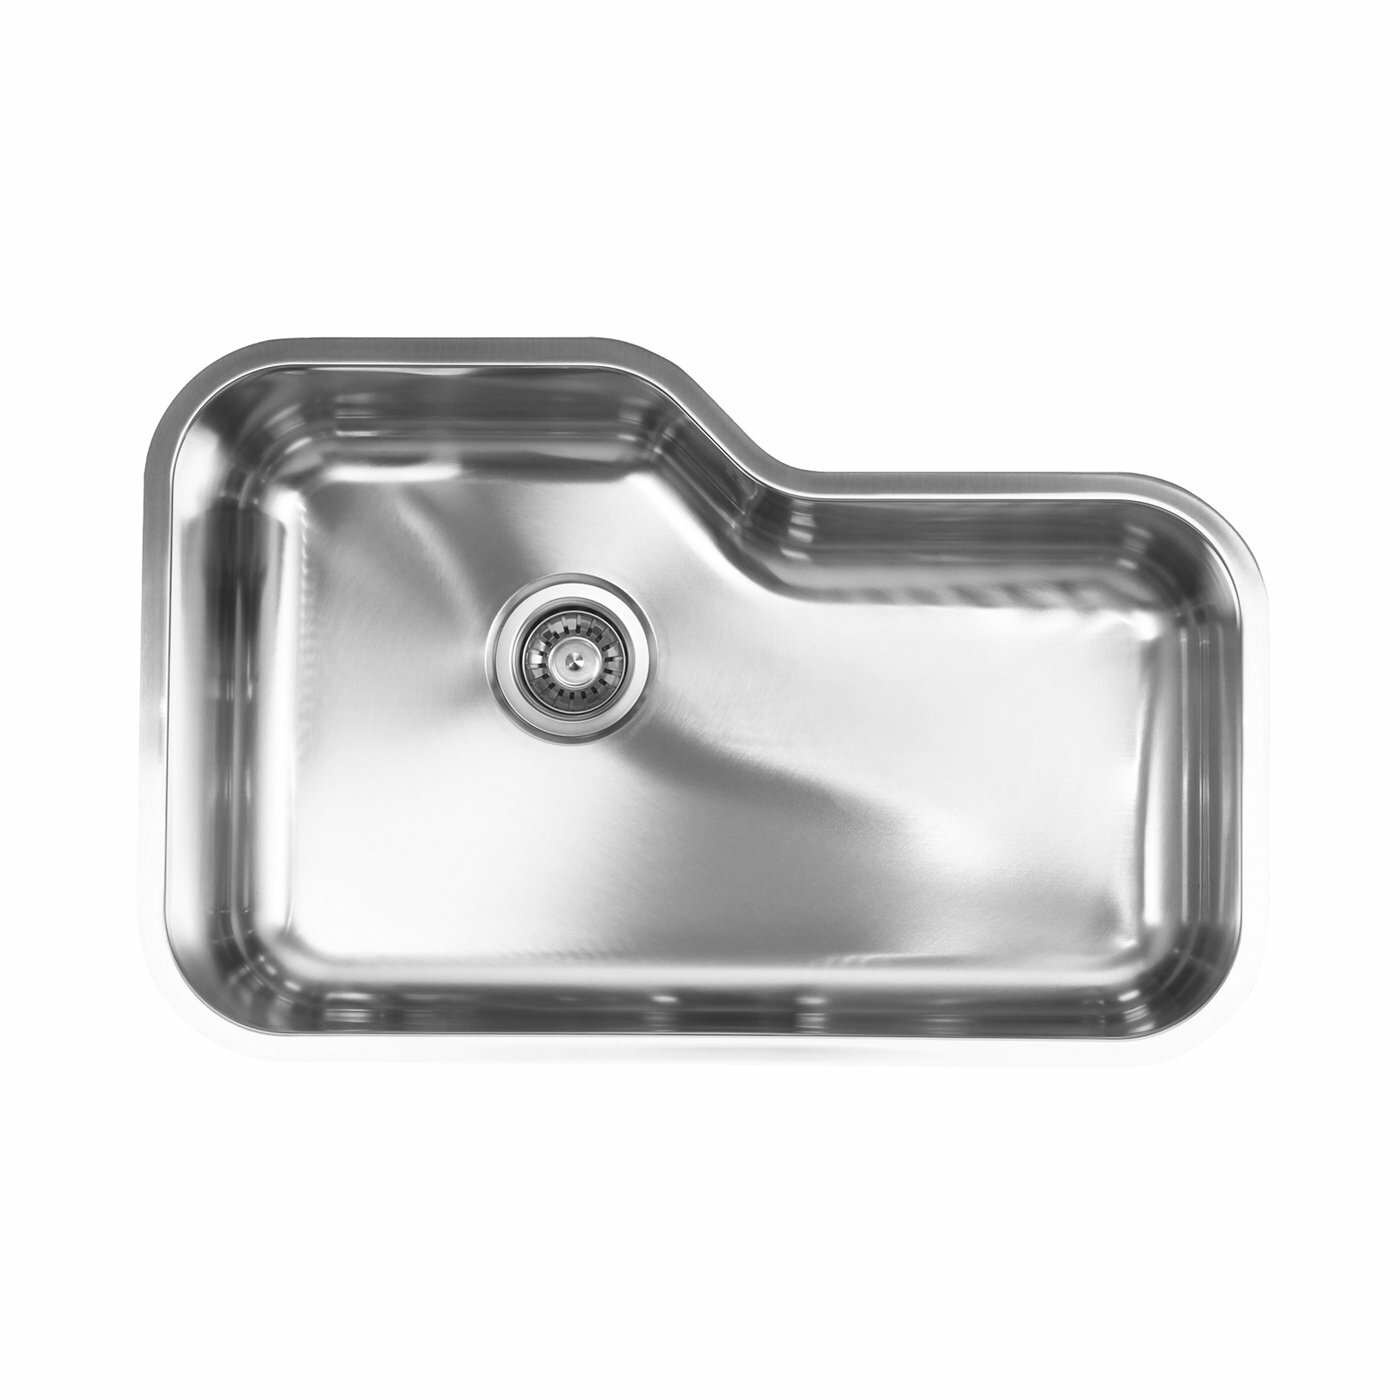 kitchen sink manufacturers inexpensive countertops options t8043x hijun manufacturer copper